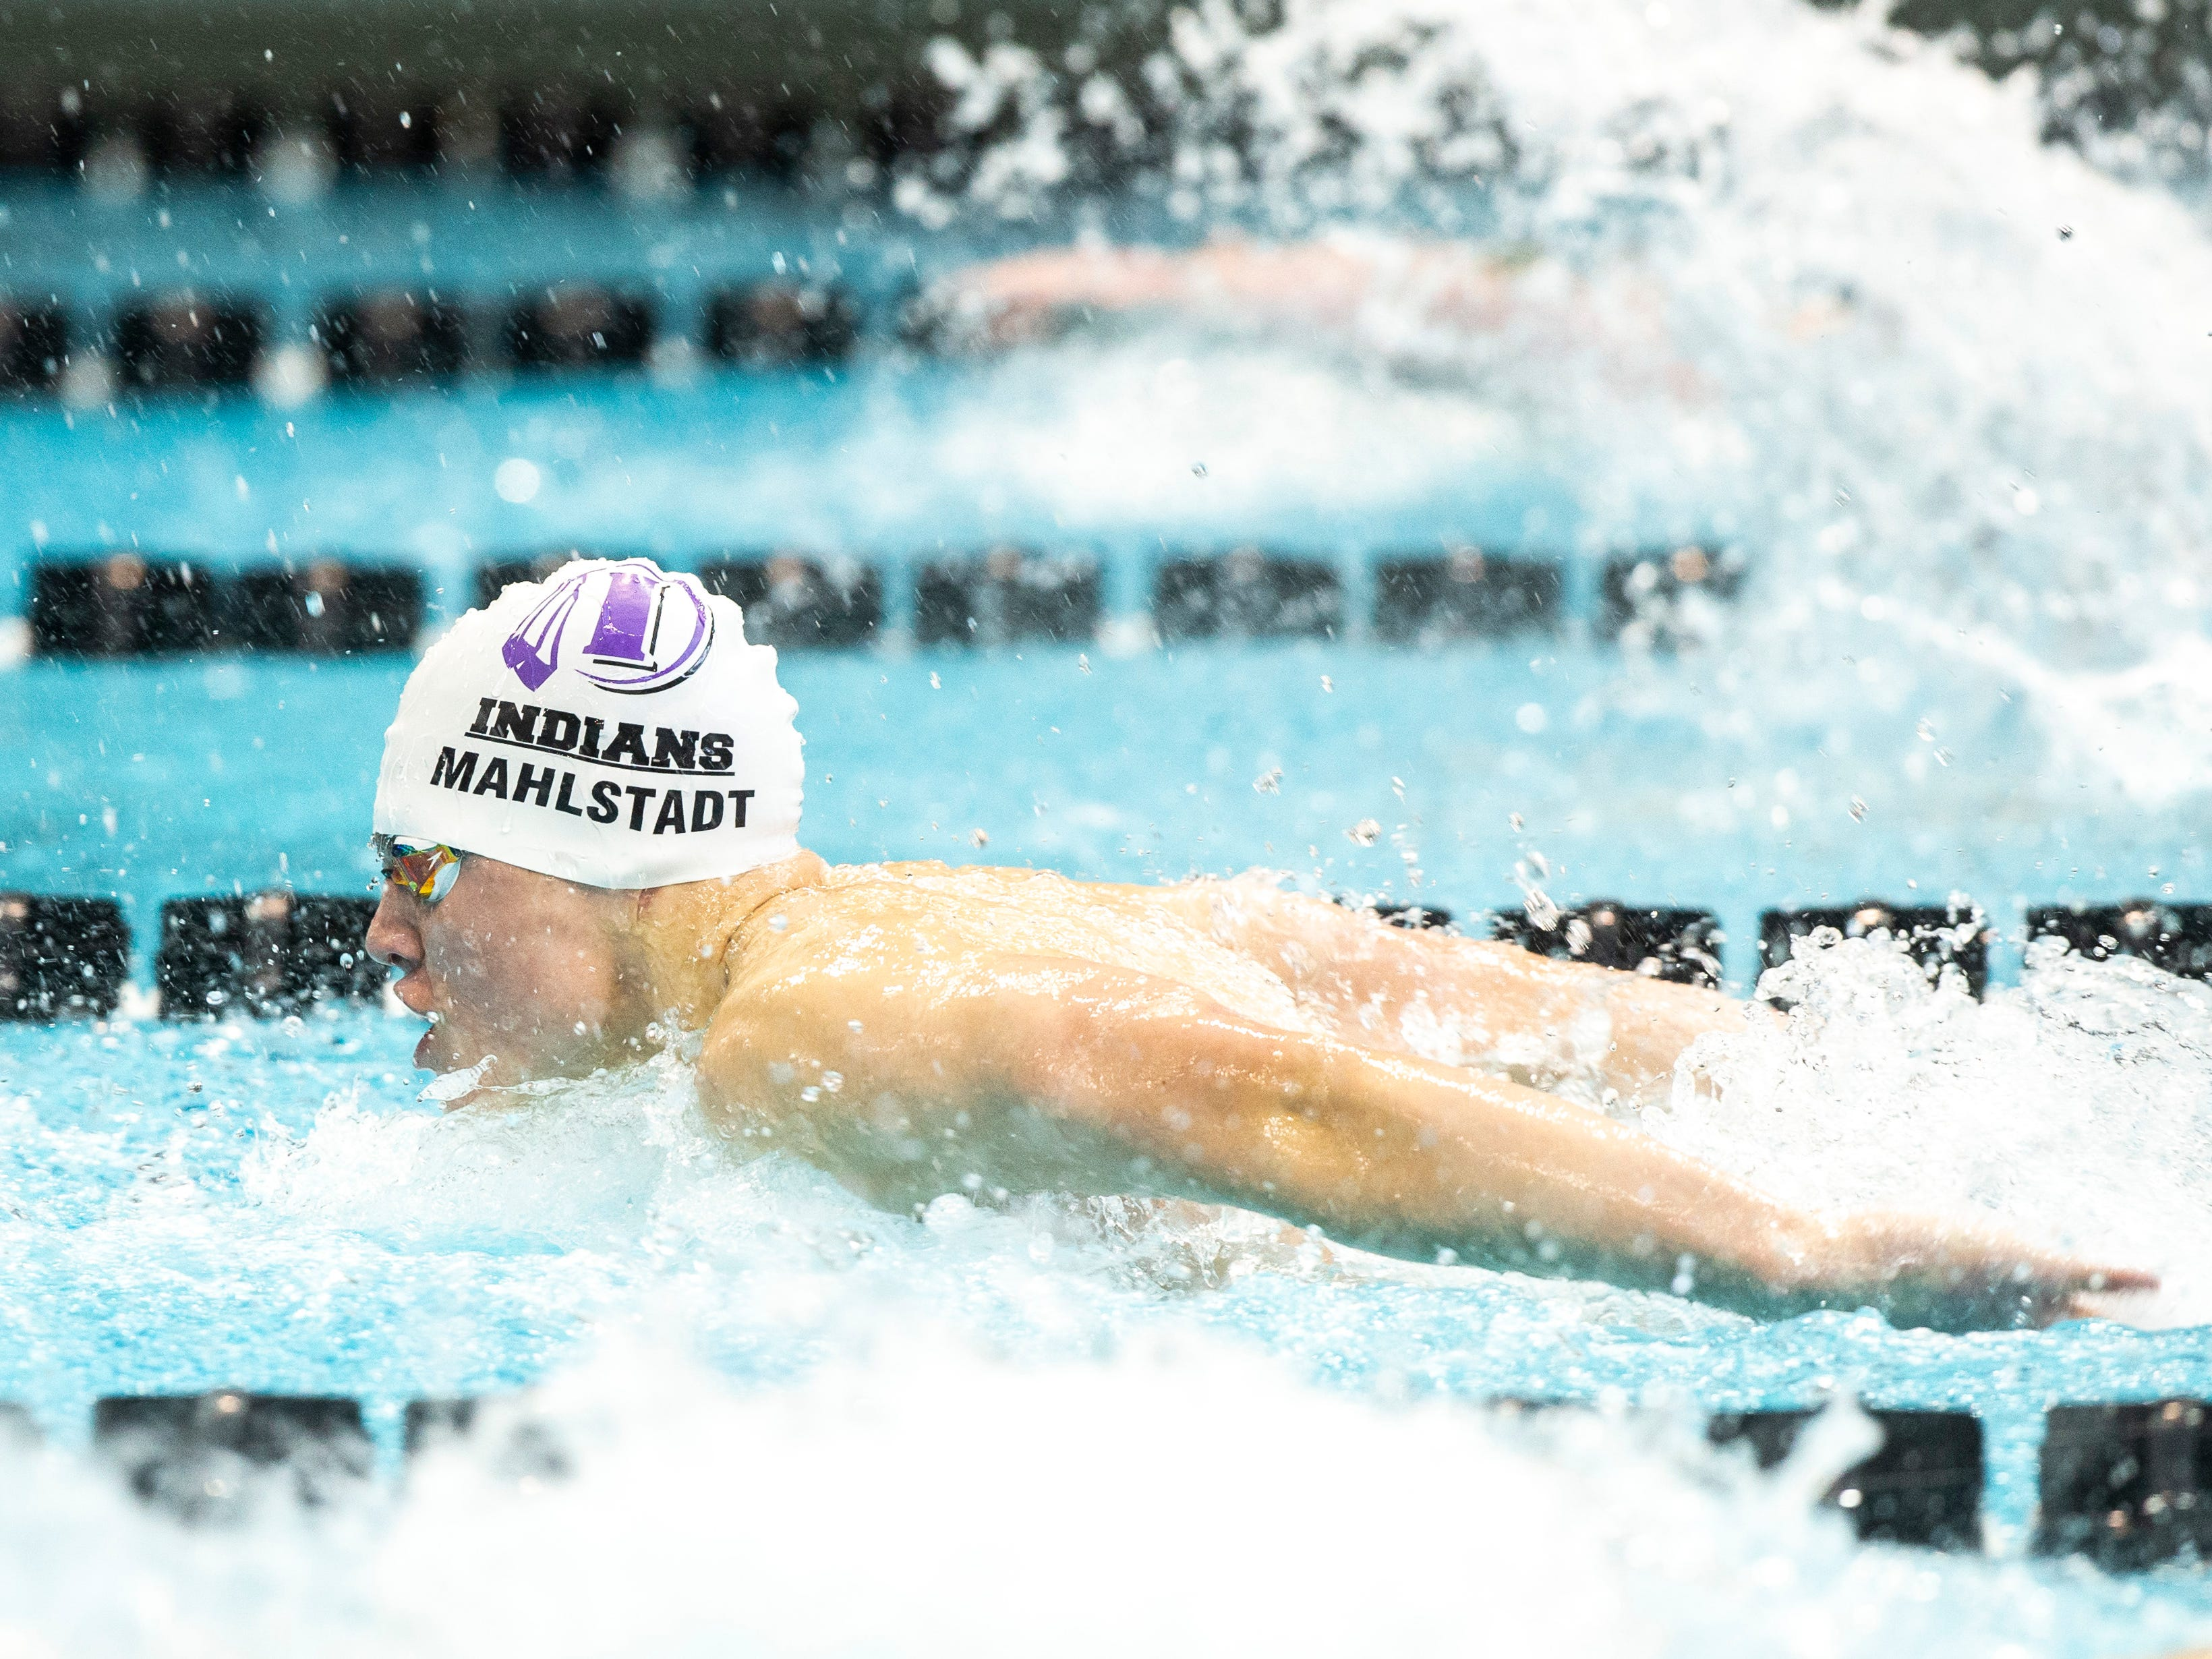 Indianola senior Jaxson Mahlstadt competes in the second heat of 100 yard butterfly during the Iowa boys' state swimming regional championship meet on Saturday, Feb. 9, 2019 at Campus Recreation and Wellness Center on the University of Iowa campus in Iowa City, Iowa.  Mahlstadt finished eighth overall, with a time of 52.73.